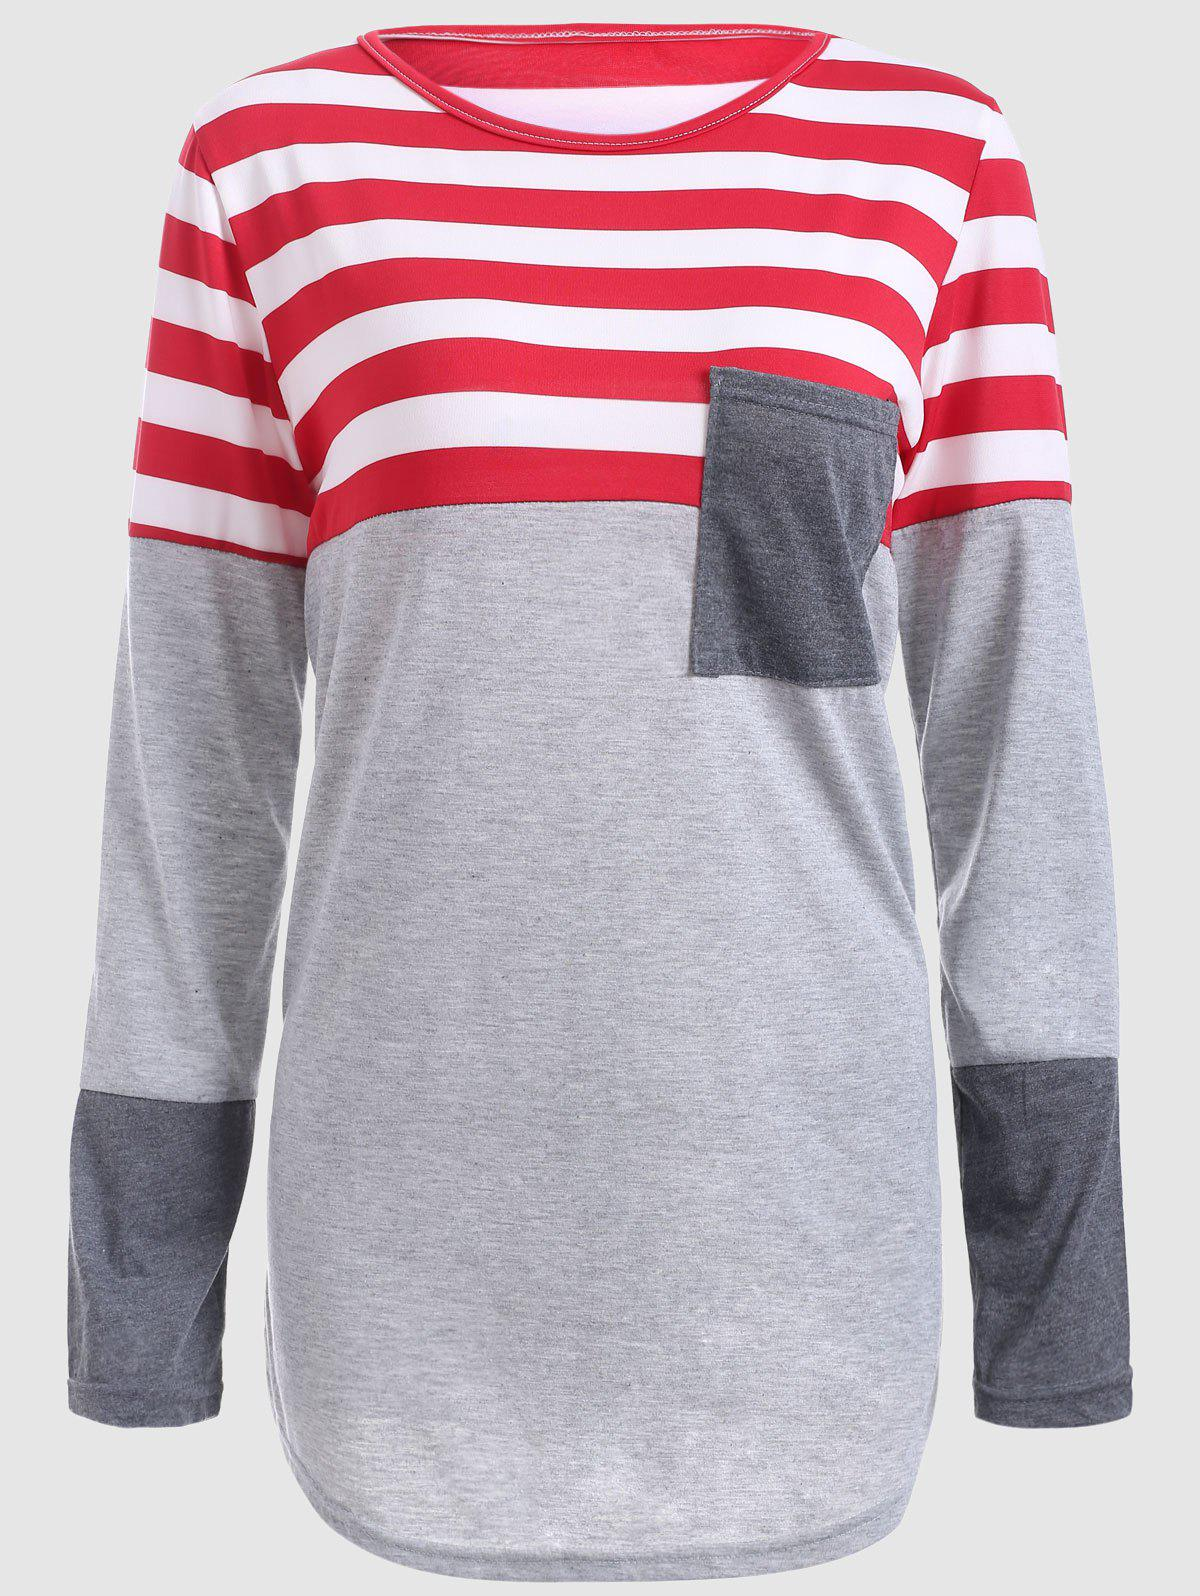 Striped Color Block Plus Size T-ShirtWOMEN<br><br>Size: 2XL; Color: GRAY; Material: Cotton Blends,Polyester; Shirt Length: Long; Sleeve Length: Full; Collar: Jewel Neck; Style: Casual; Season: Fall,Spring; Pattern Type: Striped; Weight: 0.400kg; Package Contents: 1 x T-Shirt;